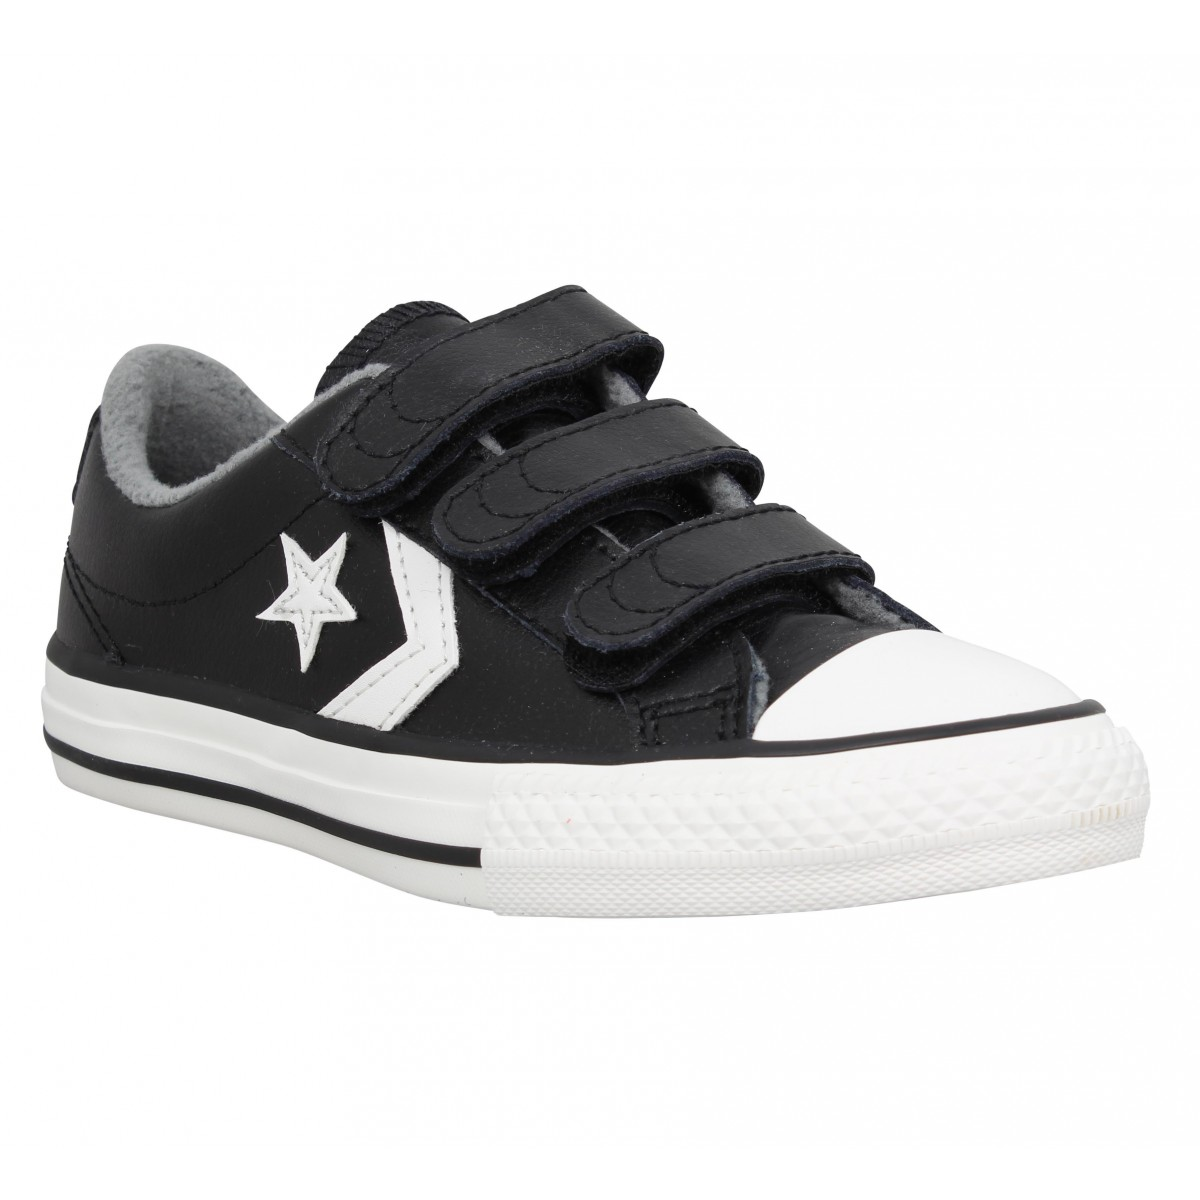 CONVERSE Star Player 3V OX cuir Enfant Noir